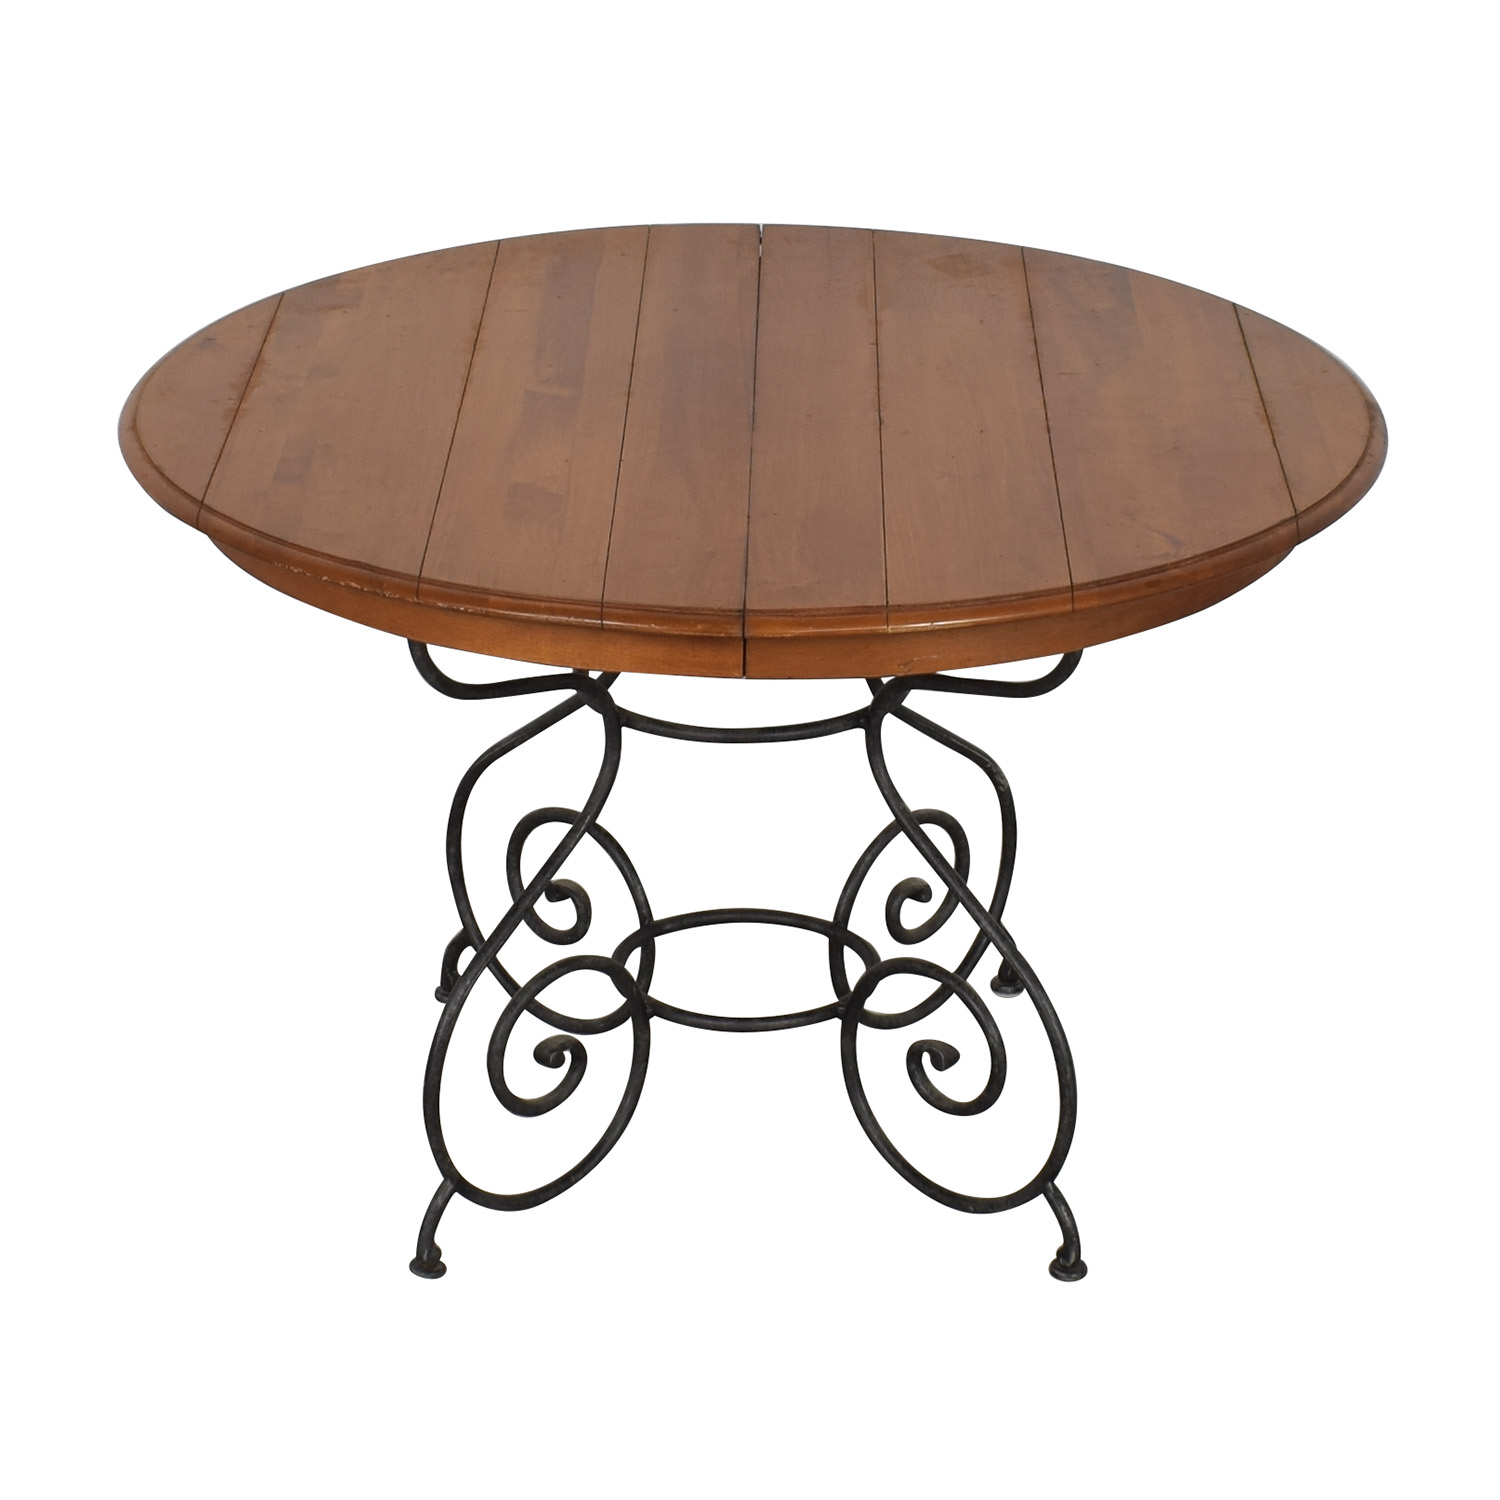 Ethan Allen Legacy Russet Dining Table sale